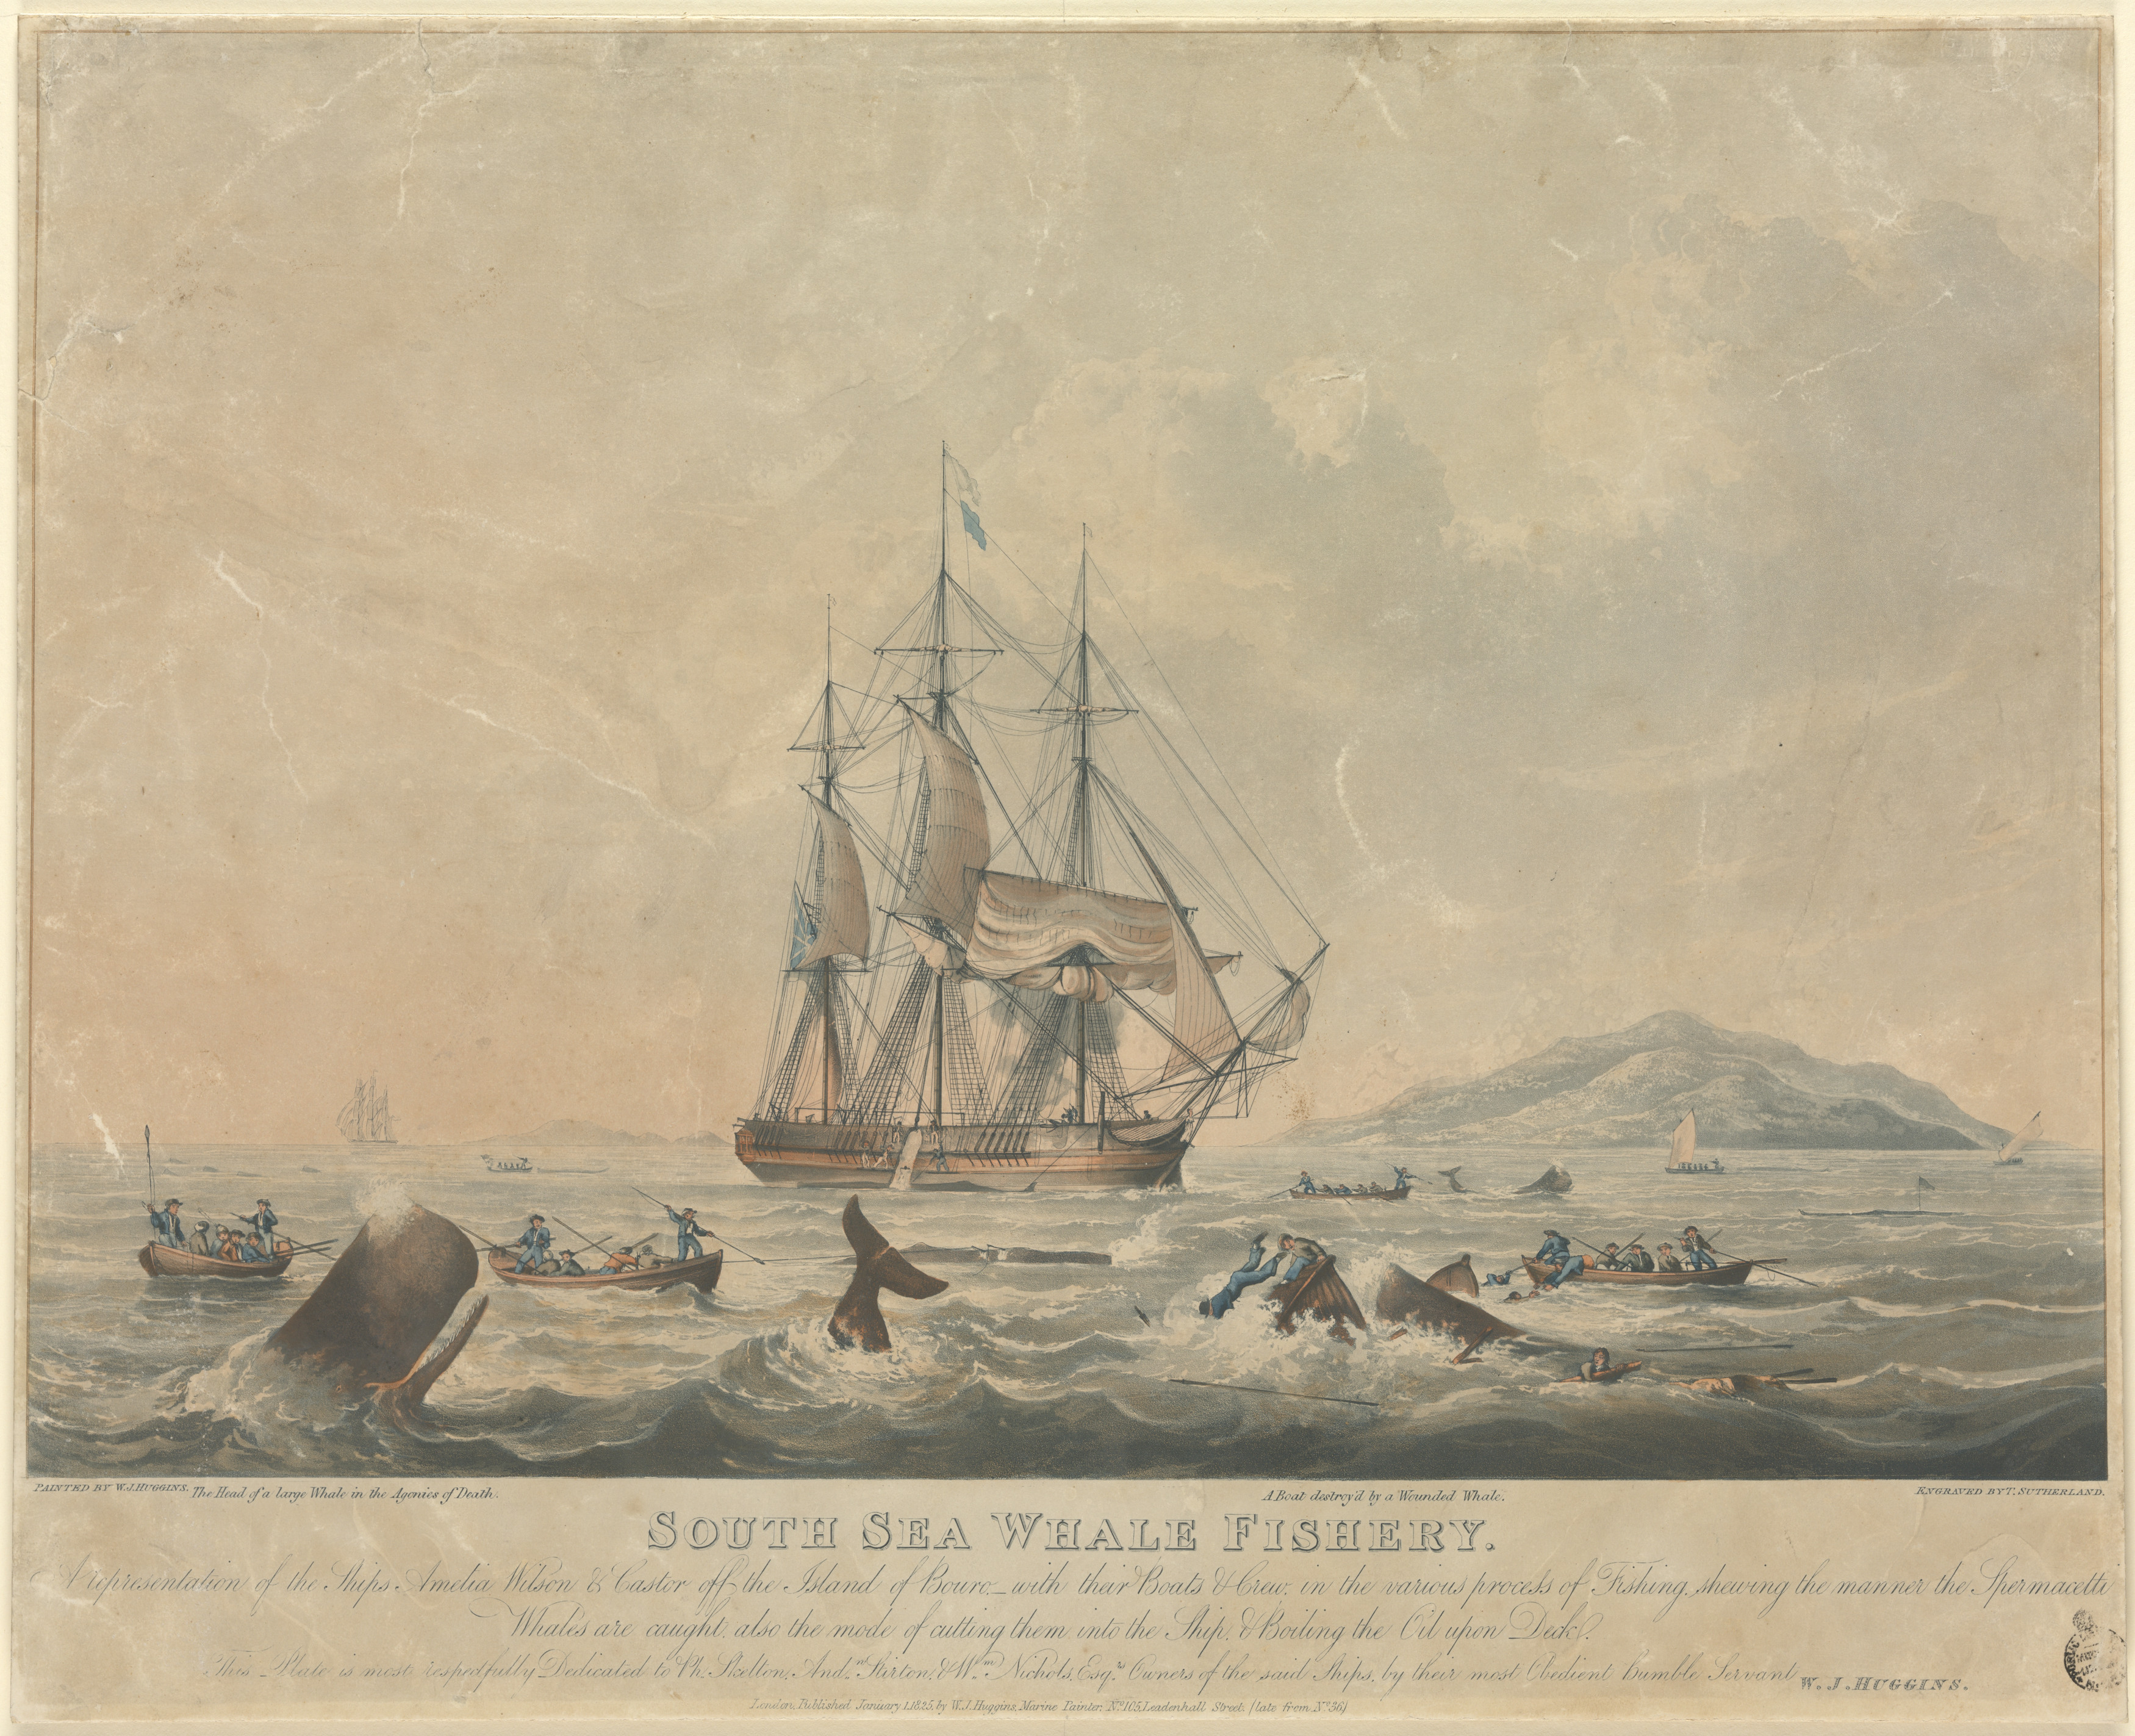 South Sea whale fishery, 1825 / painted by W. J. Huggins, engraved by T. Sutherland